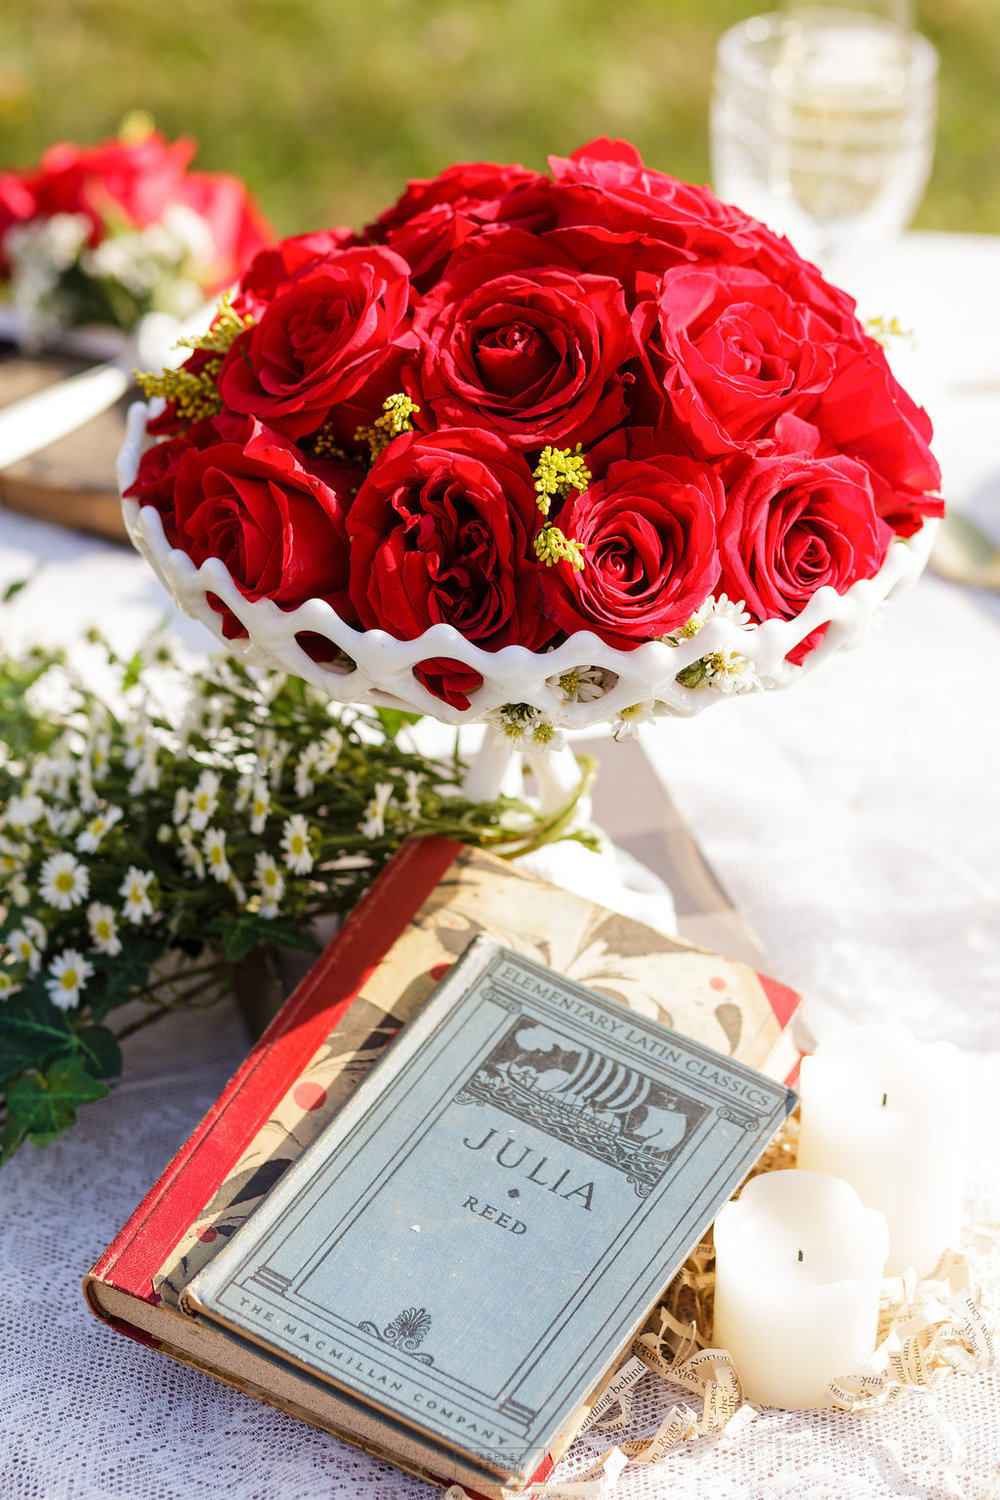 15 Classic Red Rose Centerpiece Book Lover Wedding.jpg